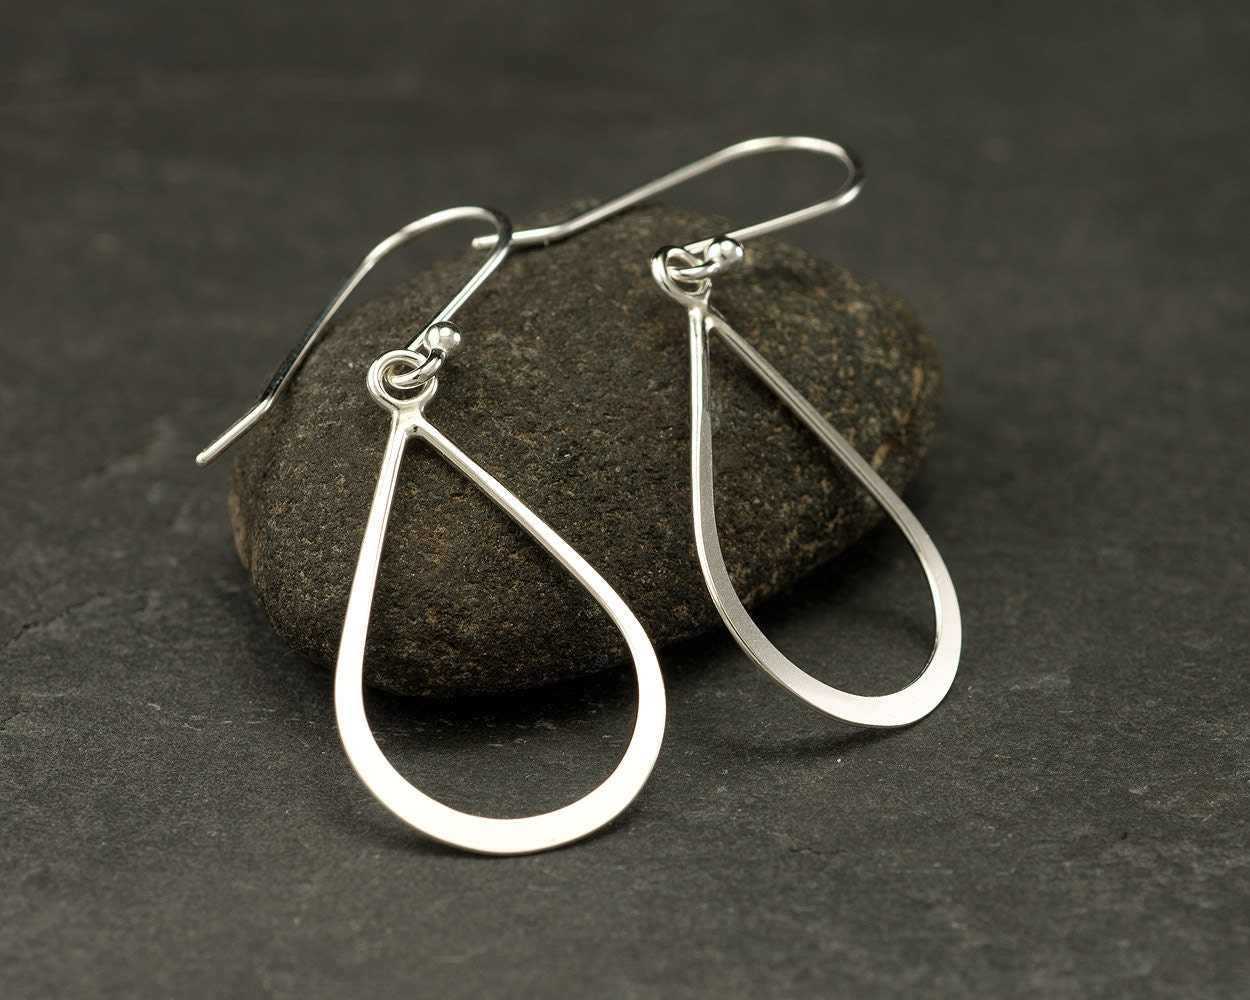 Silver Drop Earrings- Sterling Silver Teardrop Earrings- Silver Dangle Earrings- Handmade Sterling Silver Earrings- Simple Silver Earrings